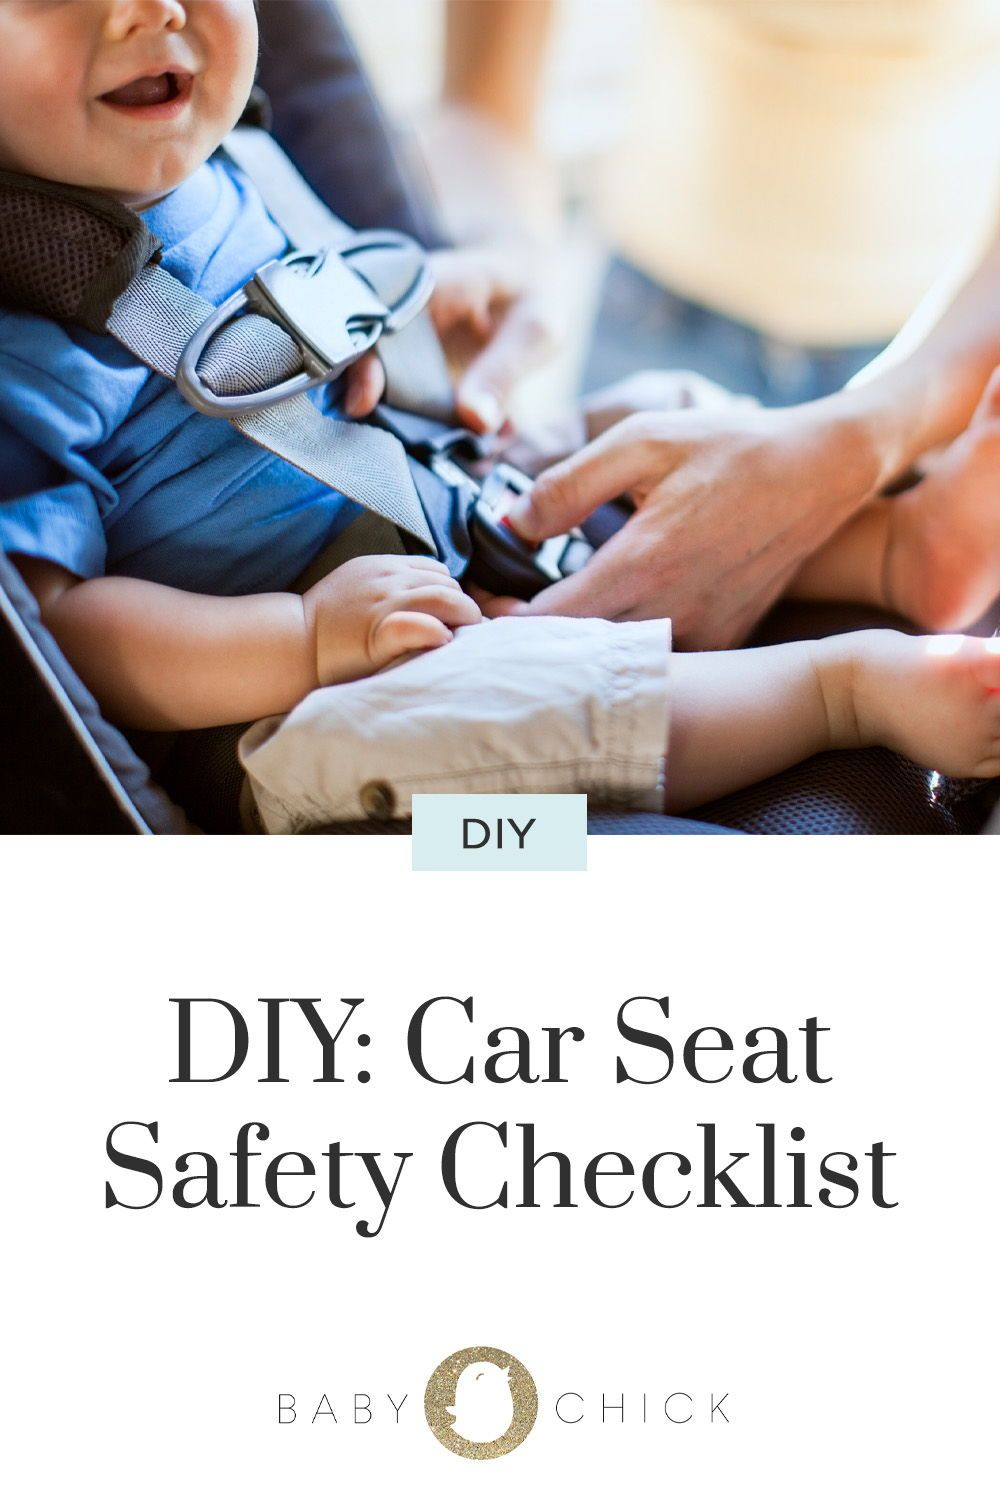 DIY Car Seat Safety Checklist Safety checklist, Baby car